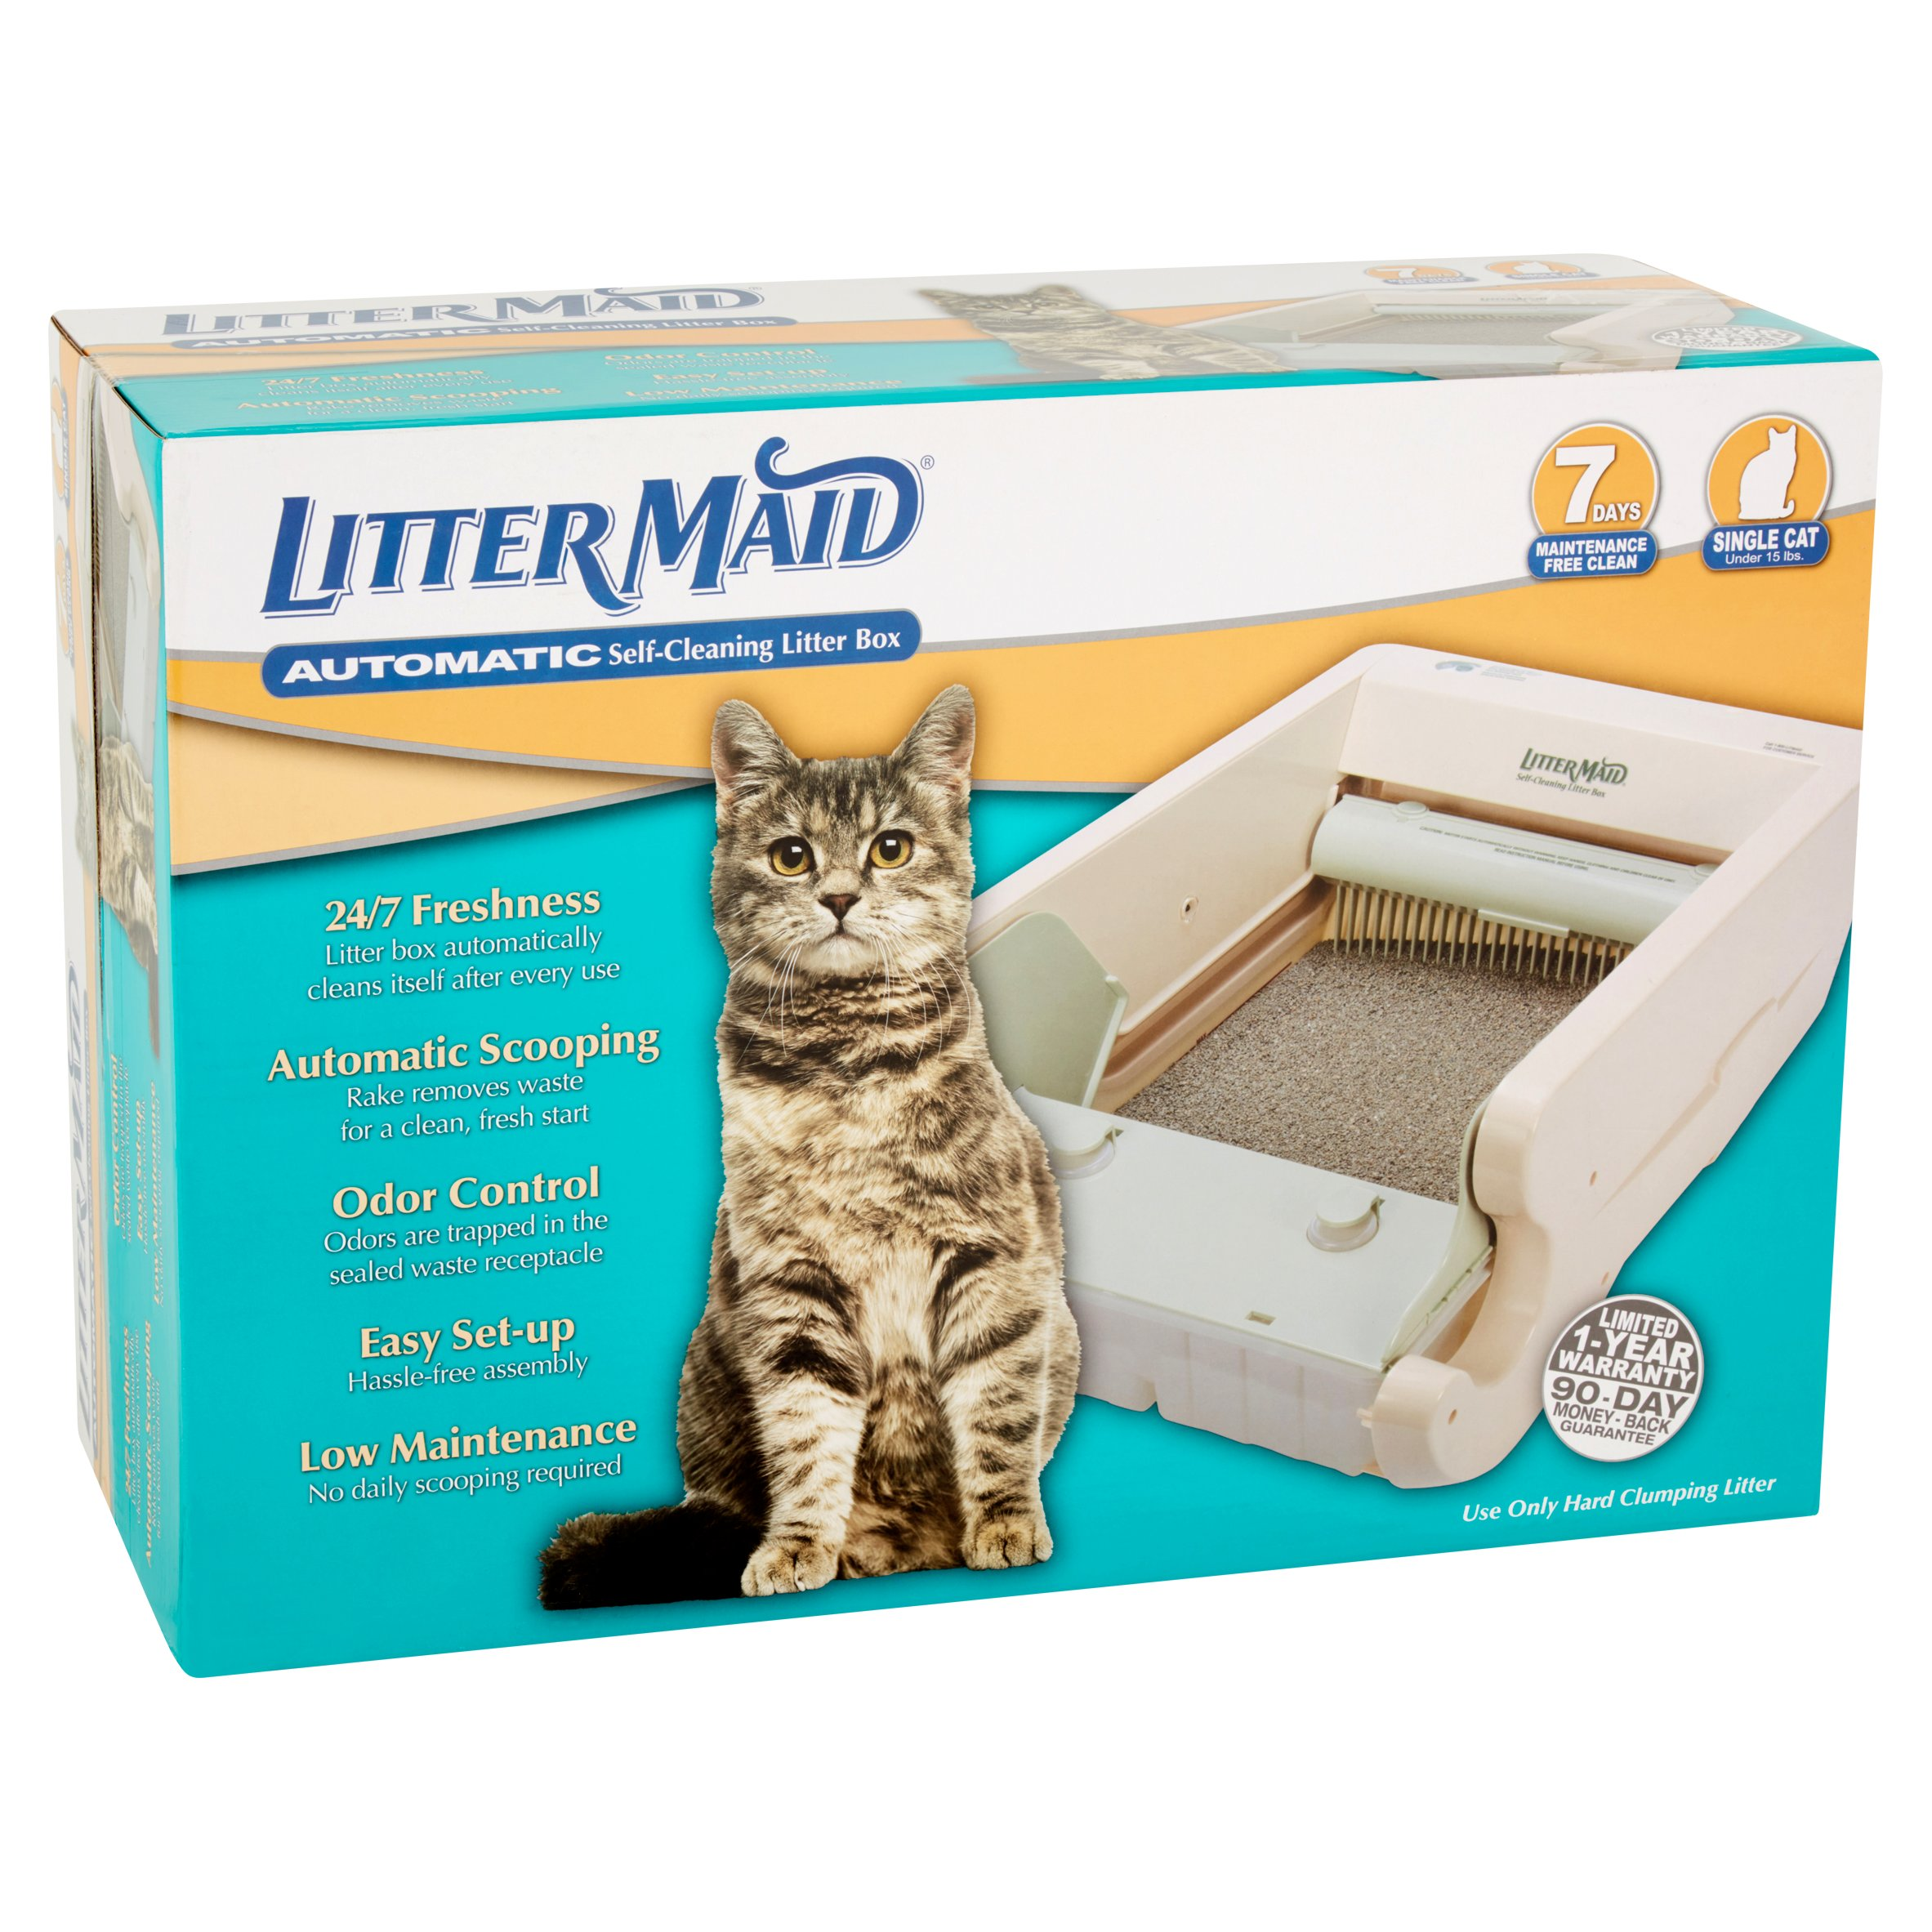 Littermaid Classic SelfCleaning Cat Litter Box LM Walmartcom - 26 pets who got stuck but keep pretending everythings ok 5 cracked me up